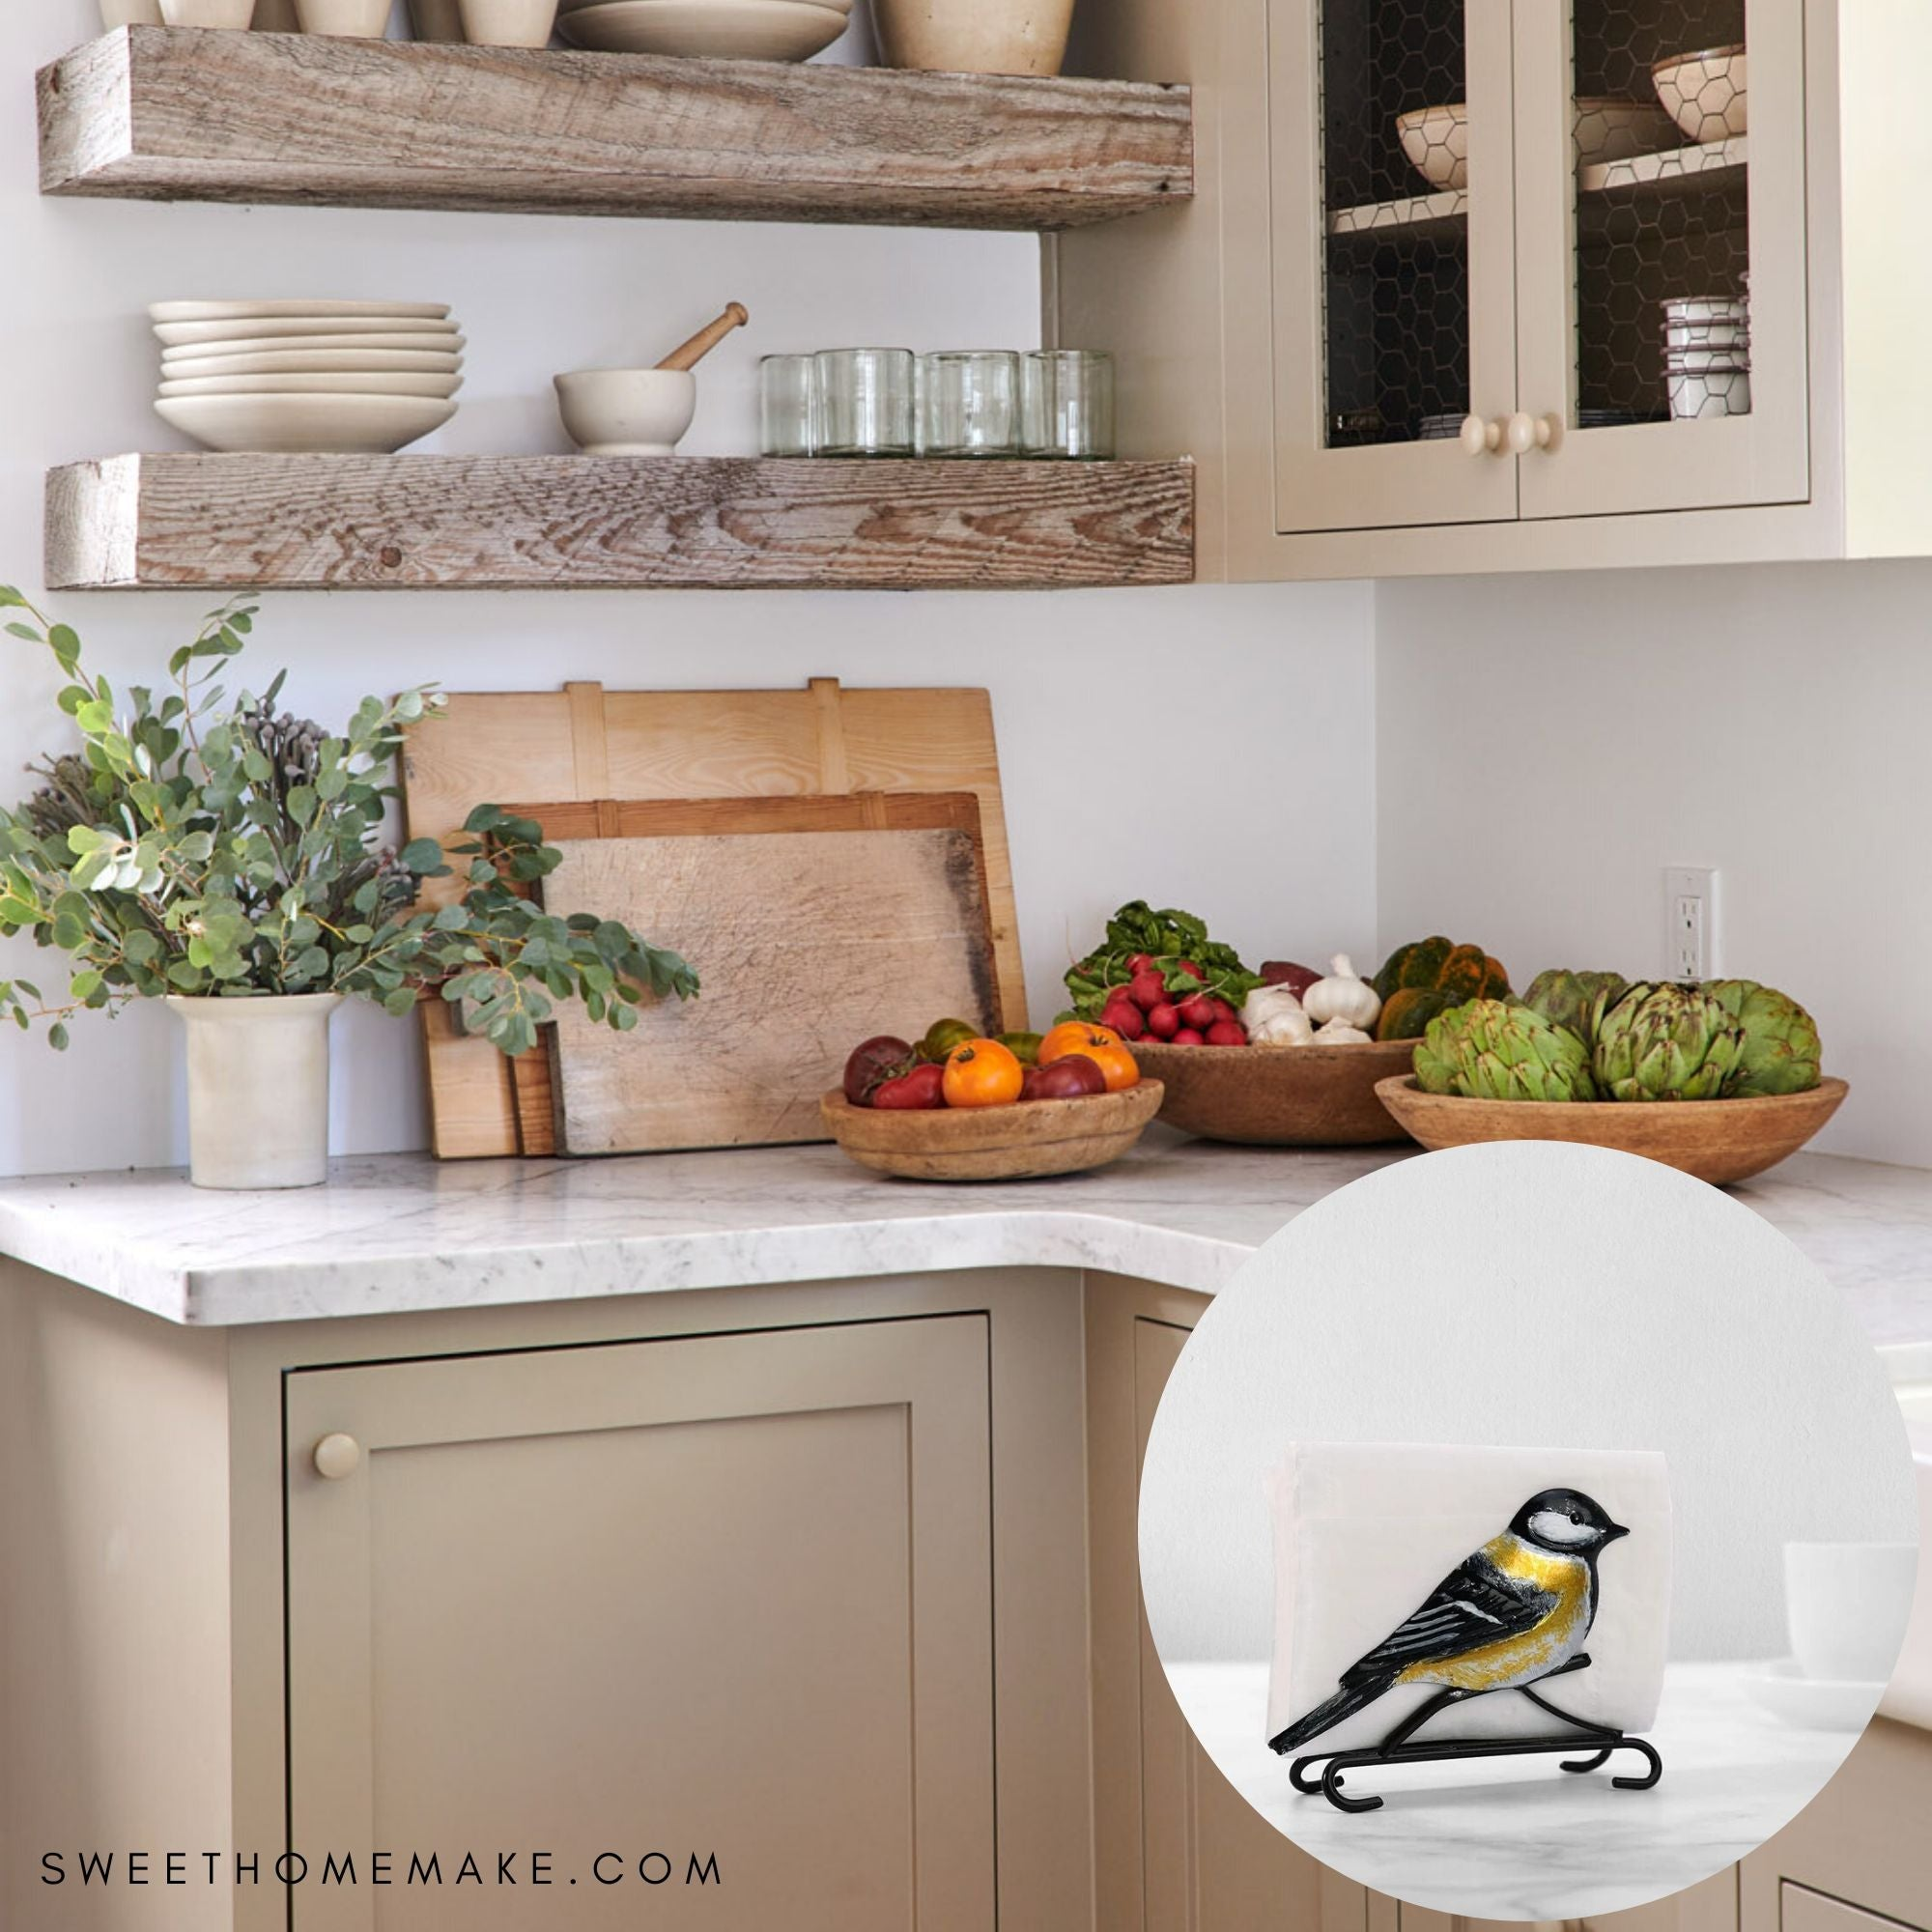 Kitchen Napkin Holder With Goldfinch And Daisy Flower Decor The Sweet Home Make